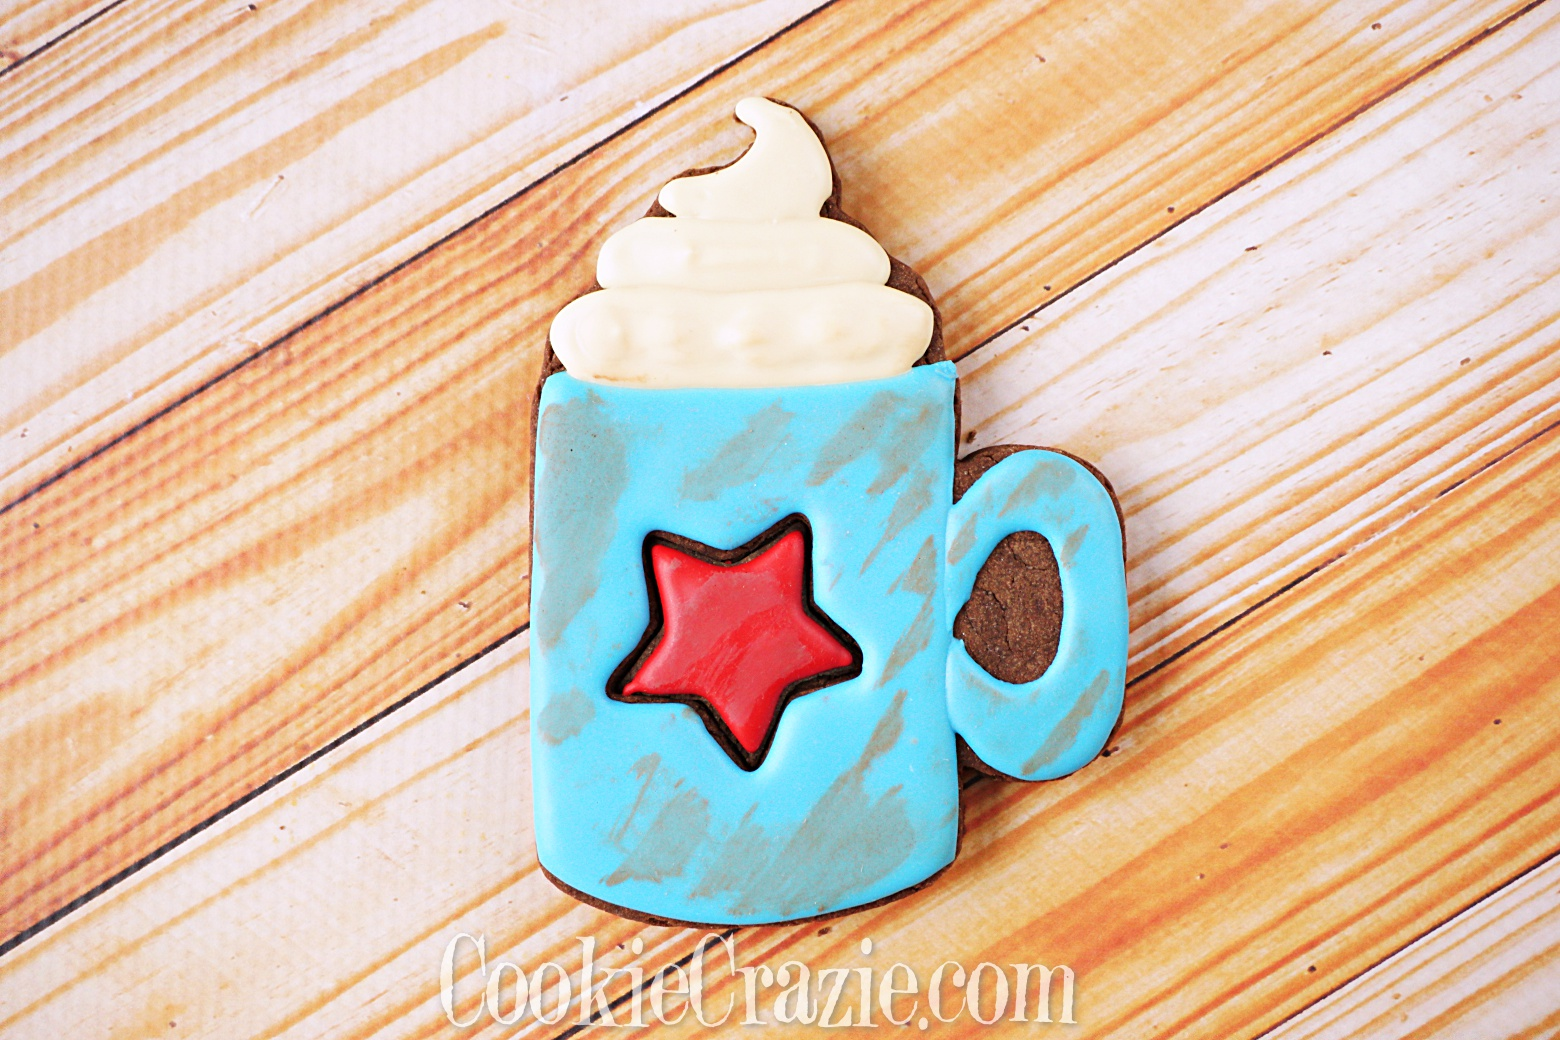 USA Patriotic Mug w Whipped Cream Decorated Sugar Cookie YouTube video  HERE